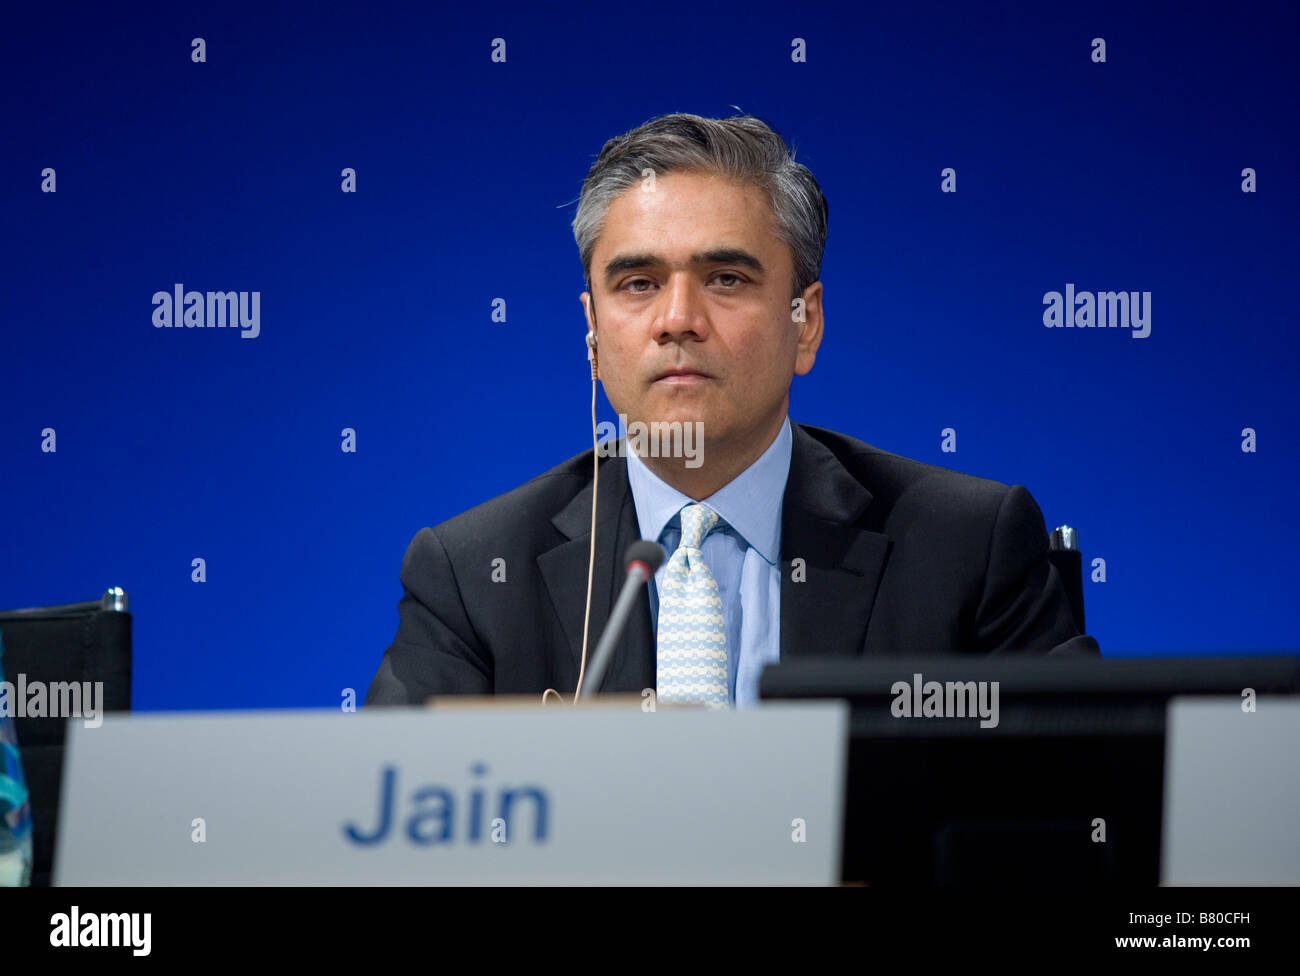 Anshu Jain during annual press conference of the Deutsche Bank AG - Stock Image